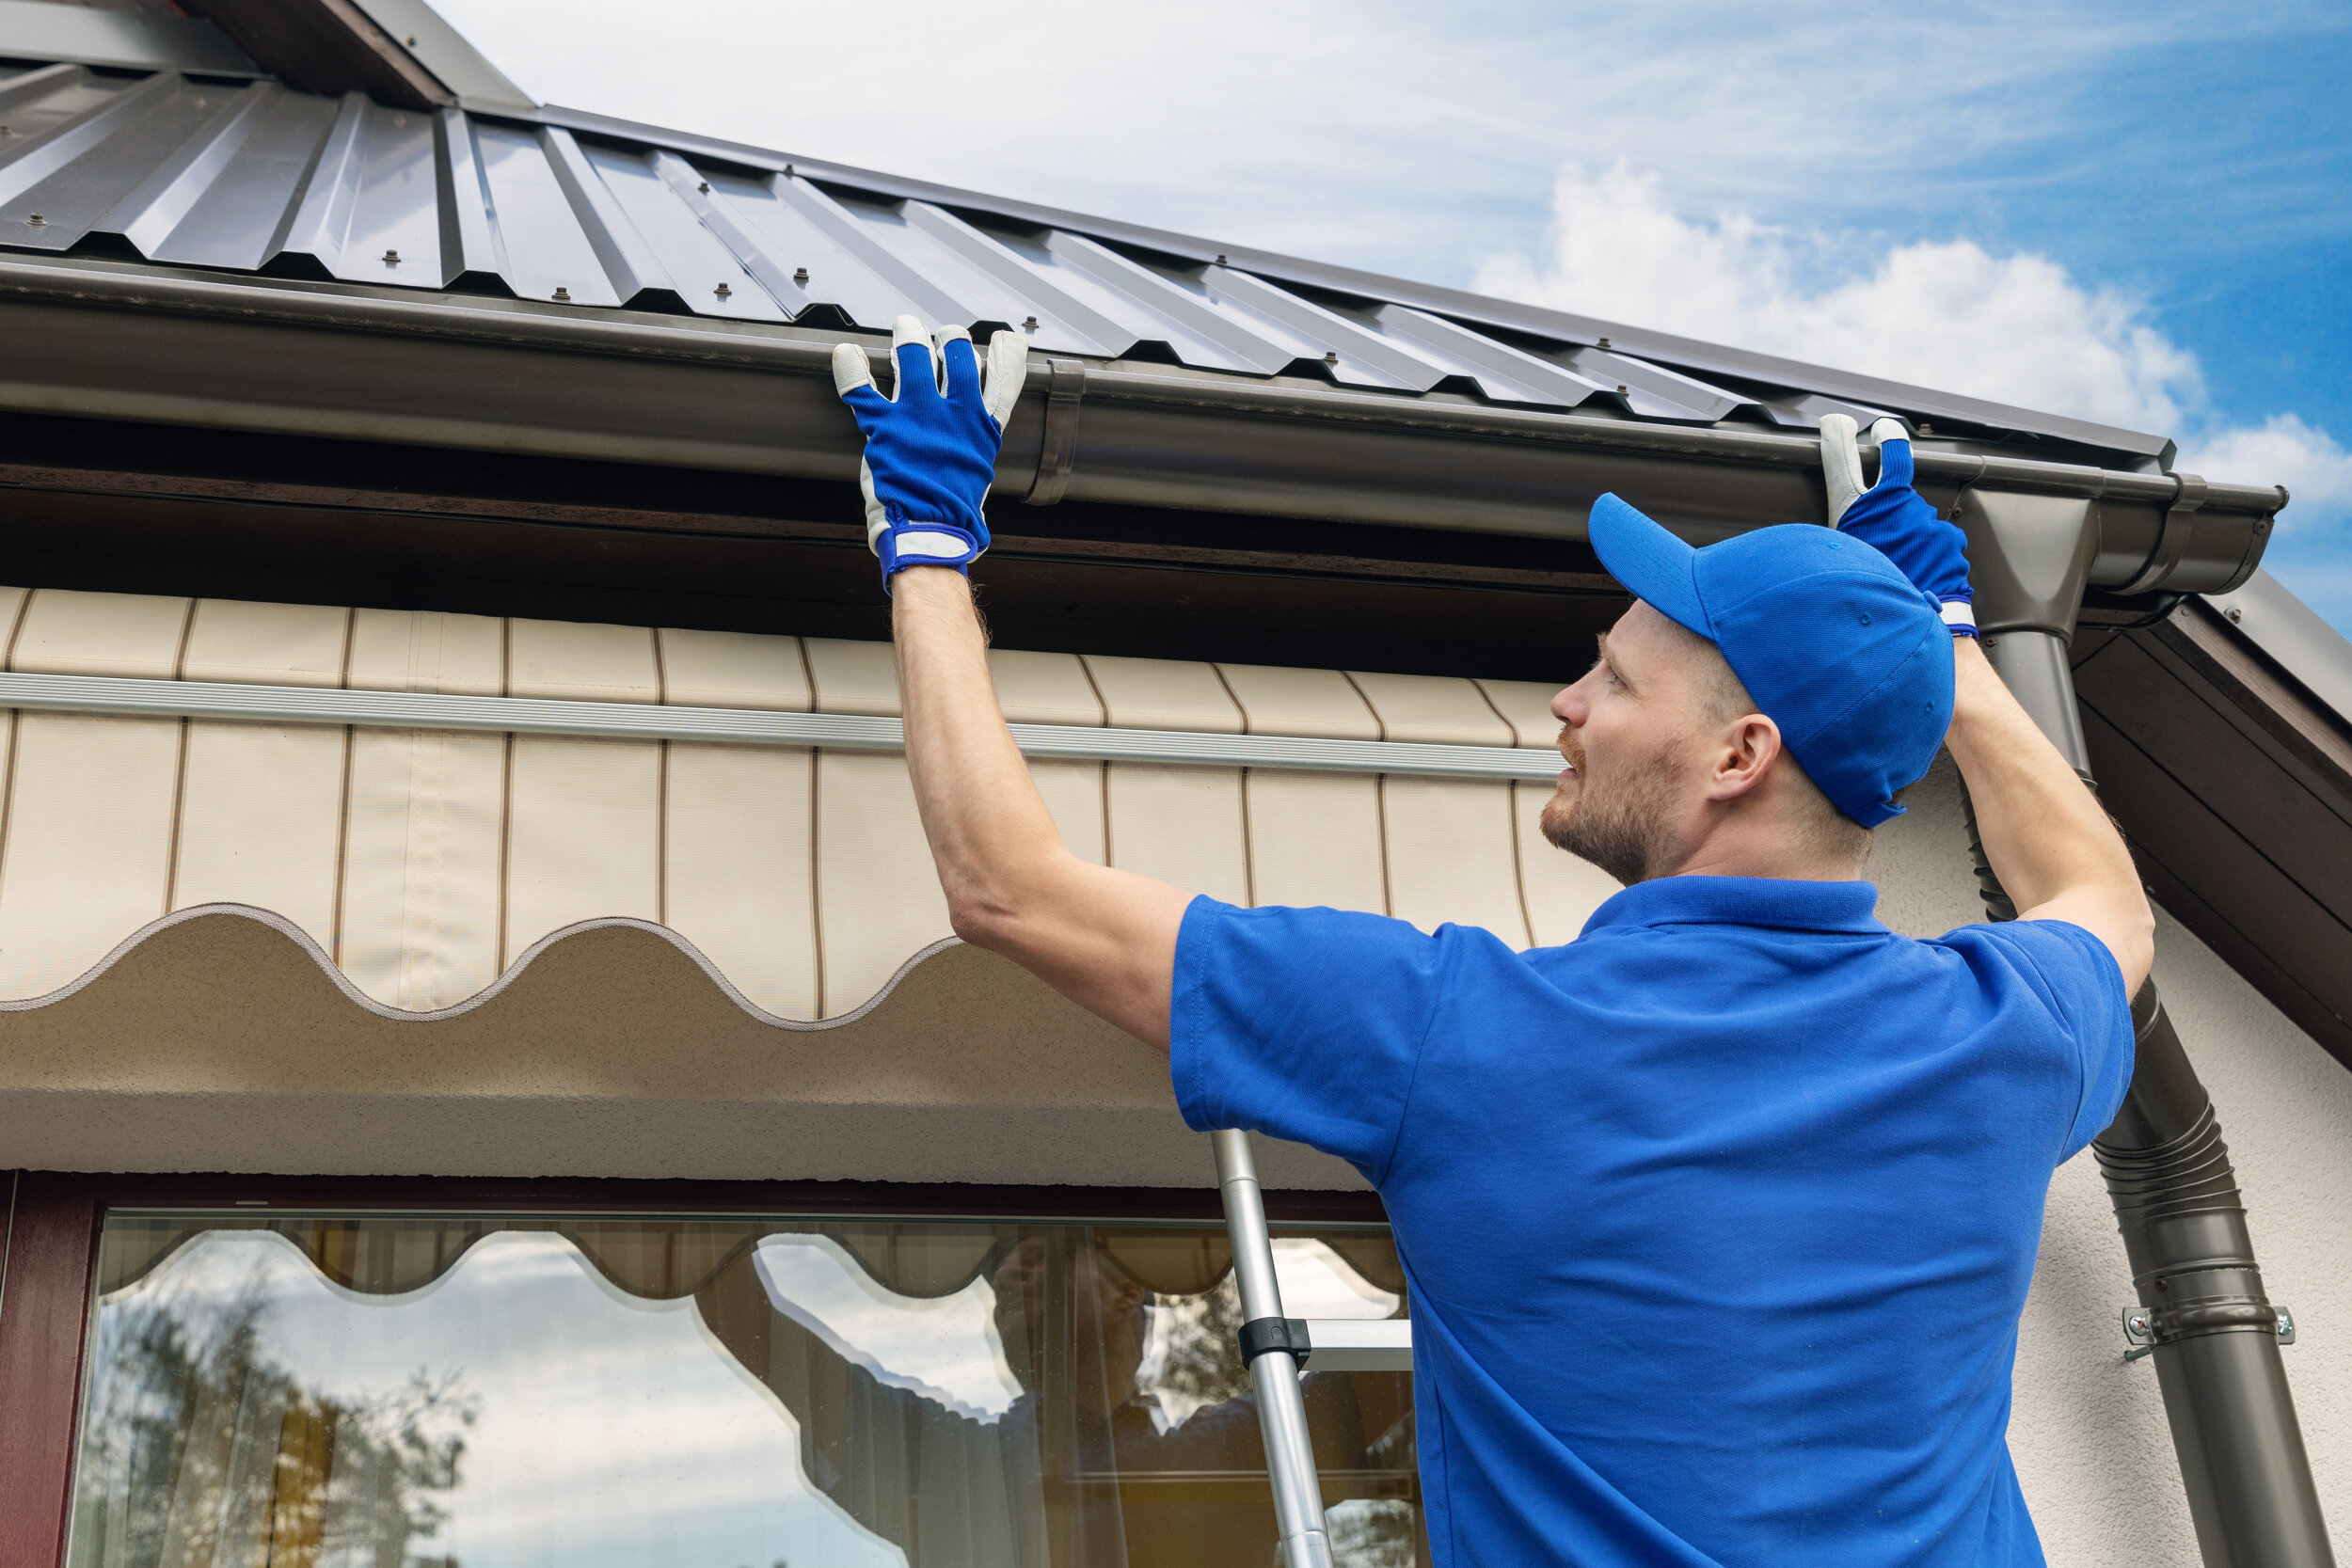 What Is The Key To Finding the Right Gutter Company for Your Vacation Home?